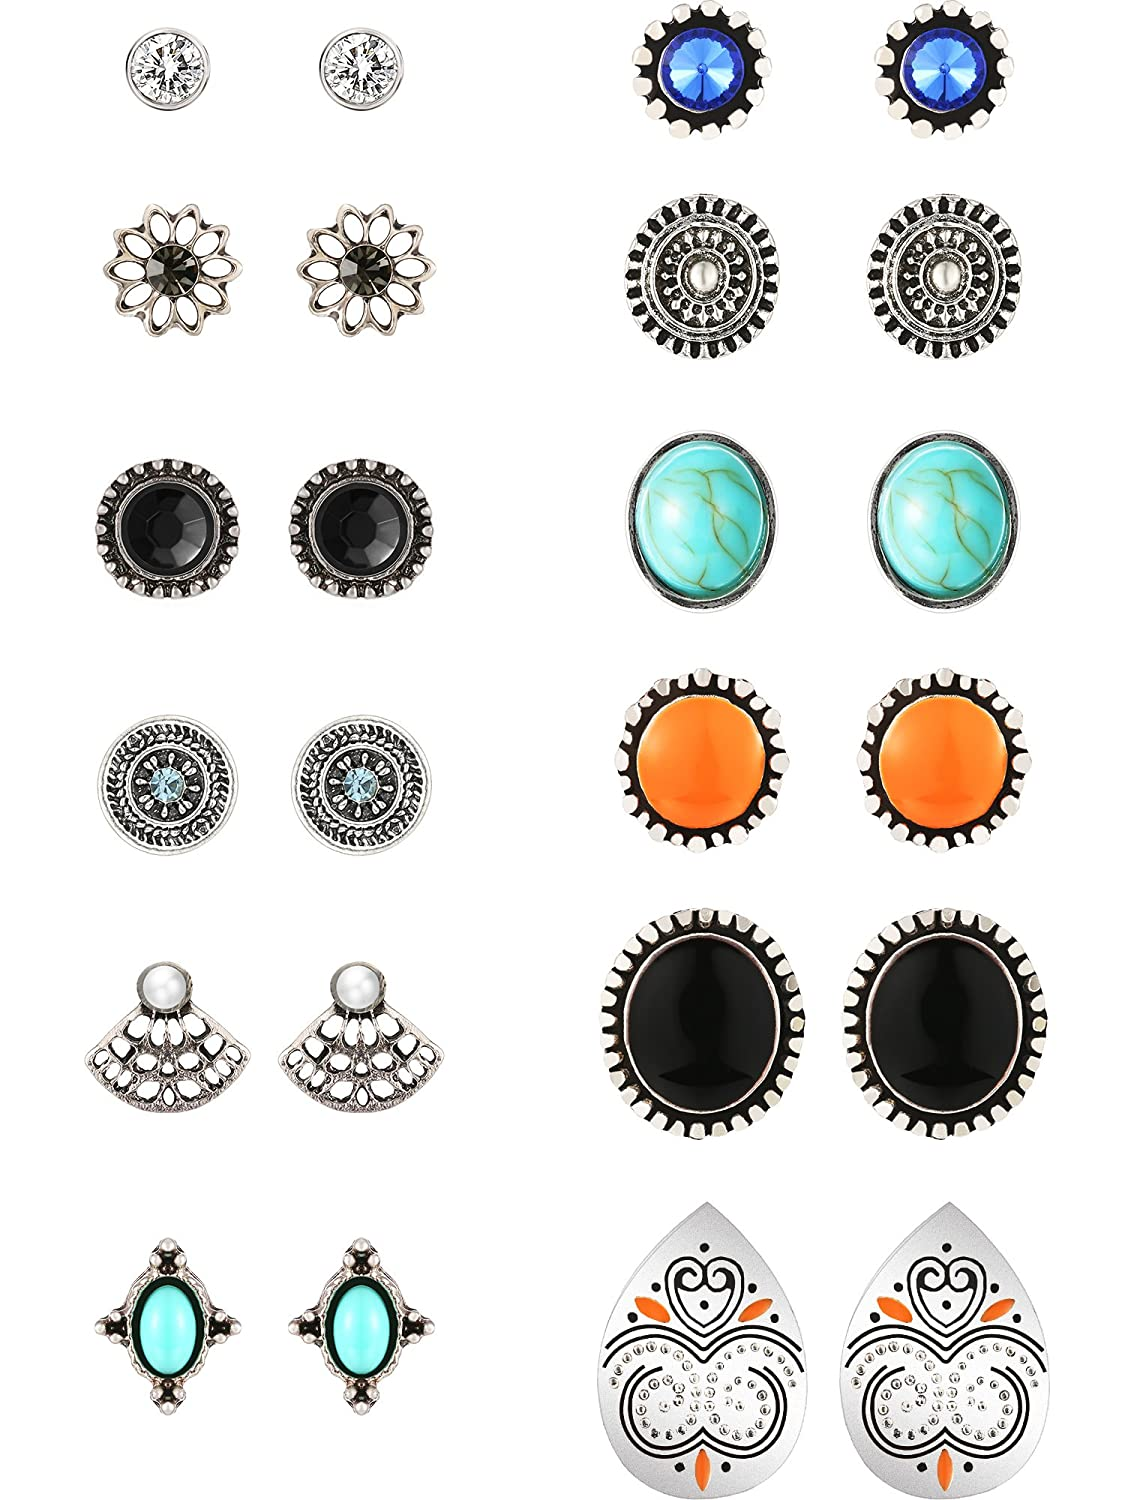 12 Pairs Bohemian Retro Vintage Style Earring Sets, Assorted Multiple Studs Earring Set for Women and Girl Gejoy Gejoy-Vintage Earring-01